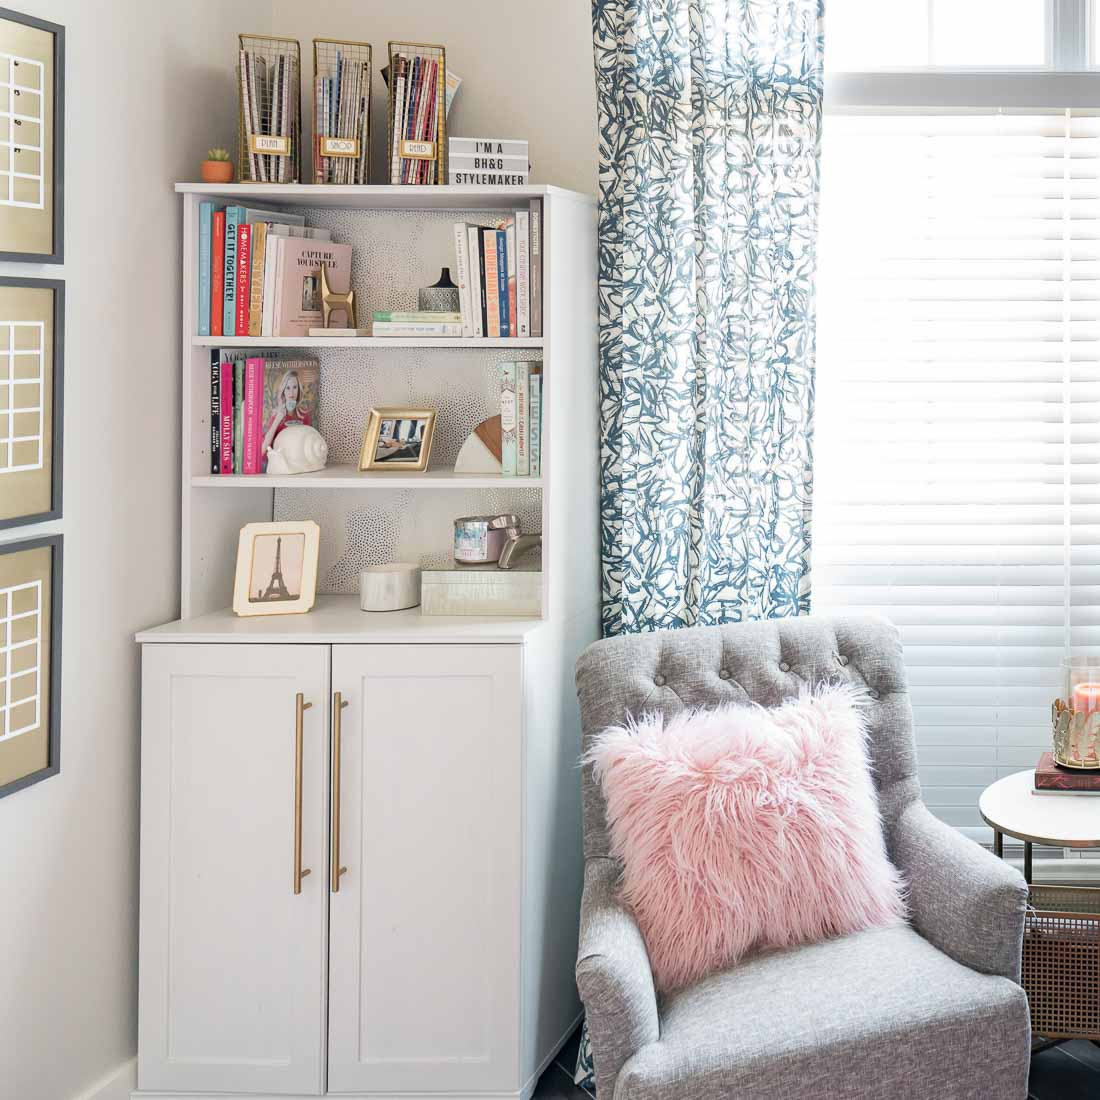 White bookcase in feminie office with gray chair and pink pillow